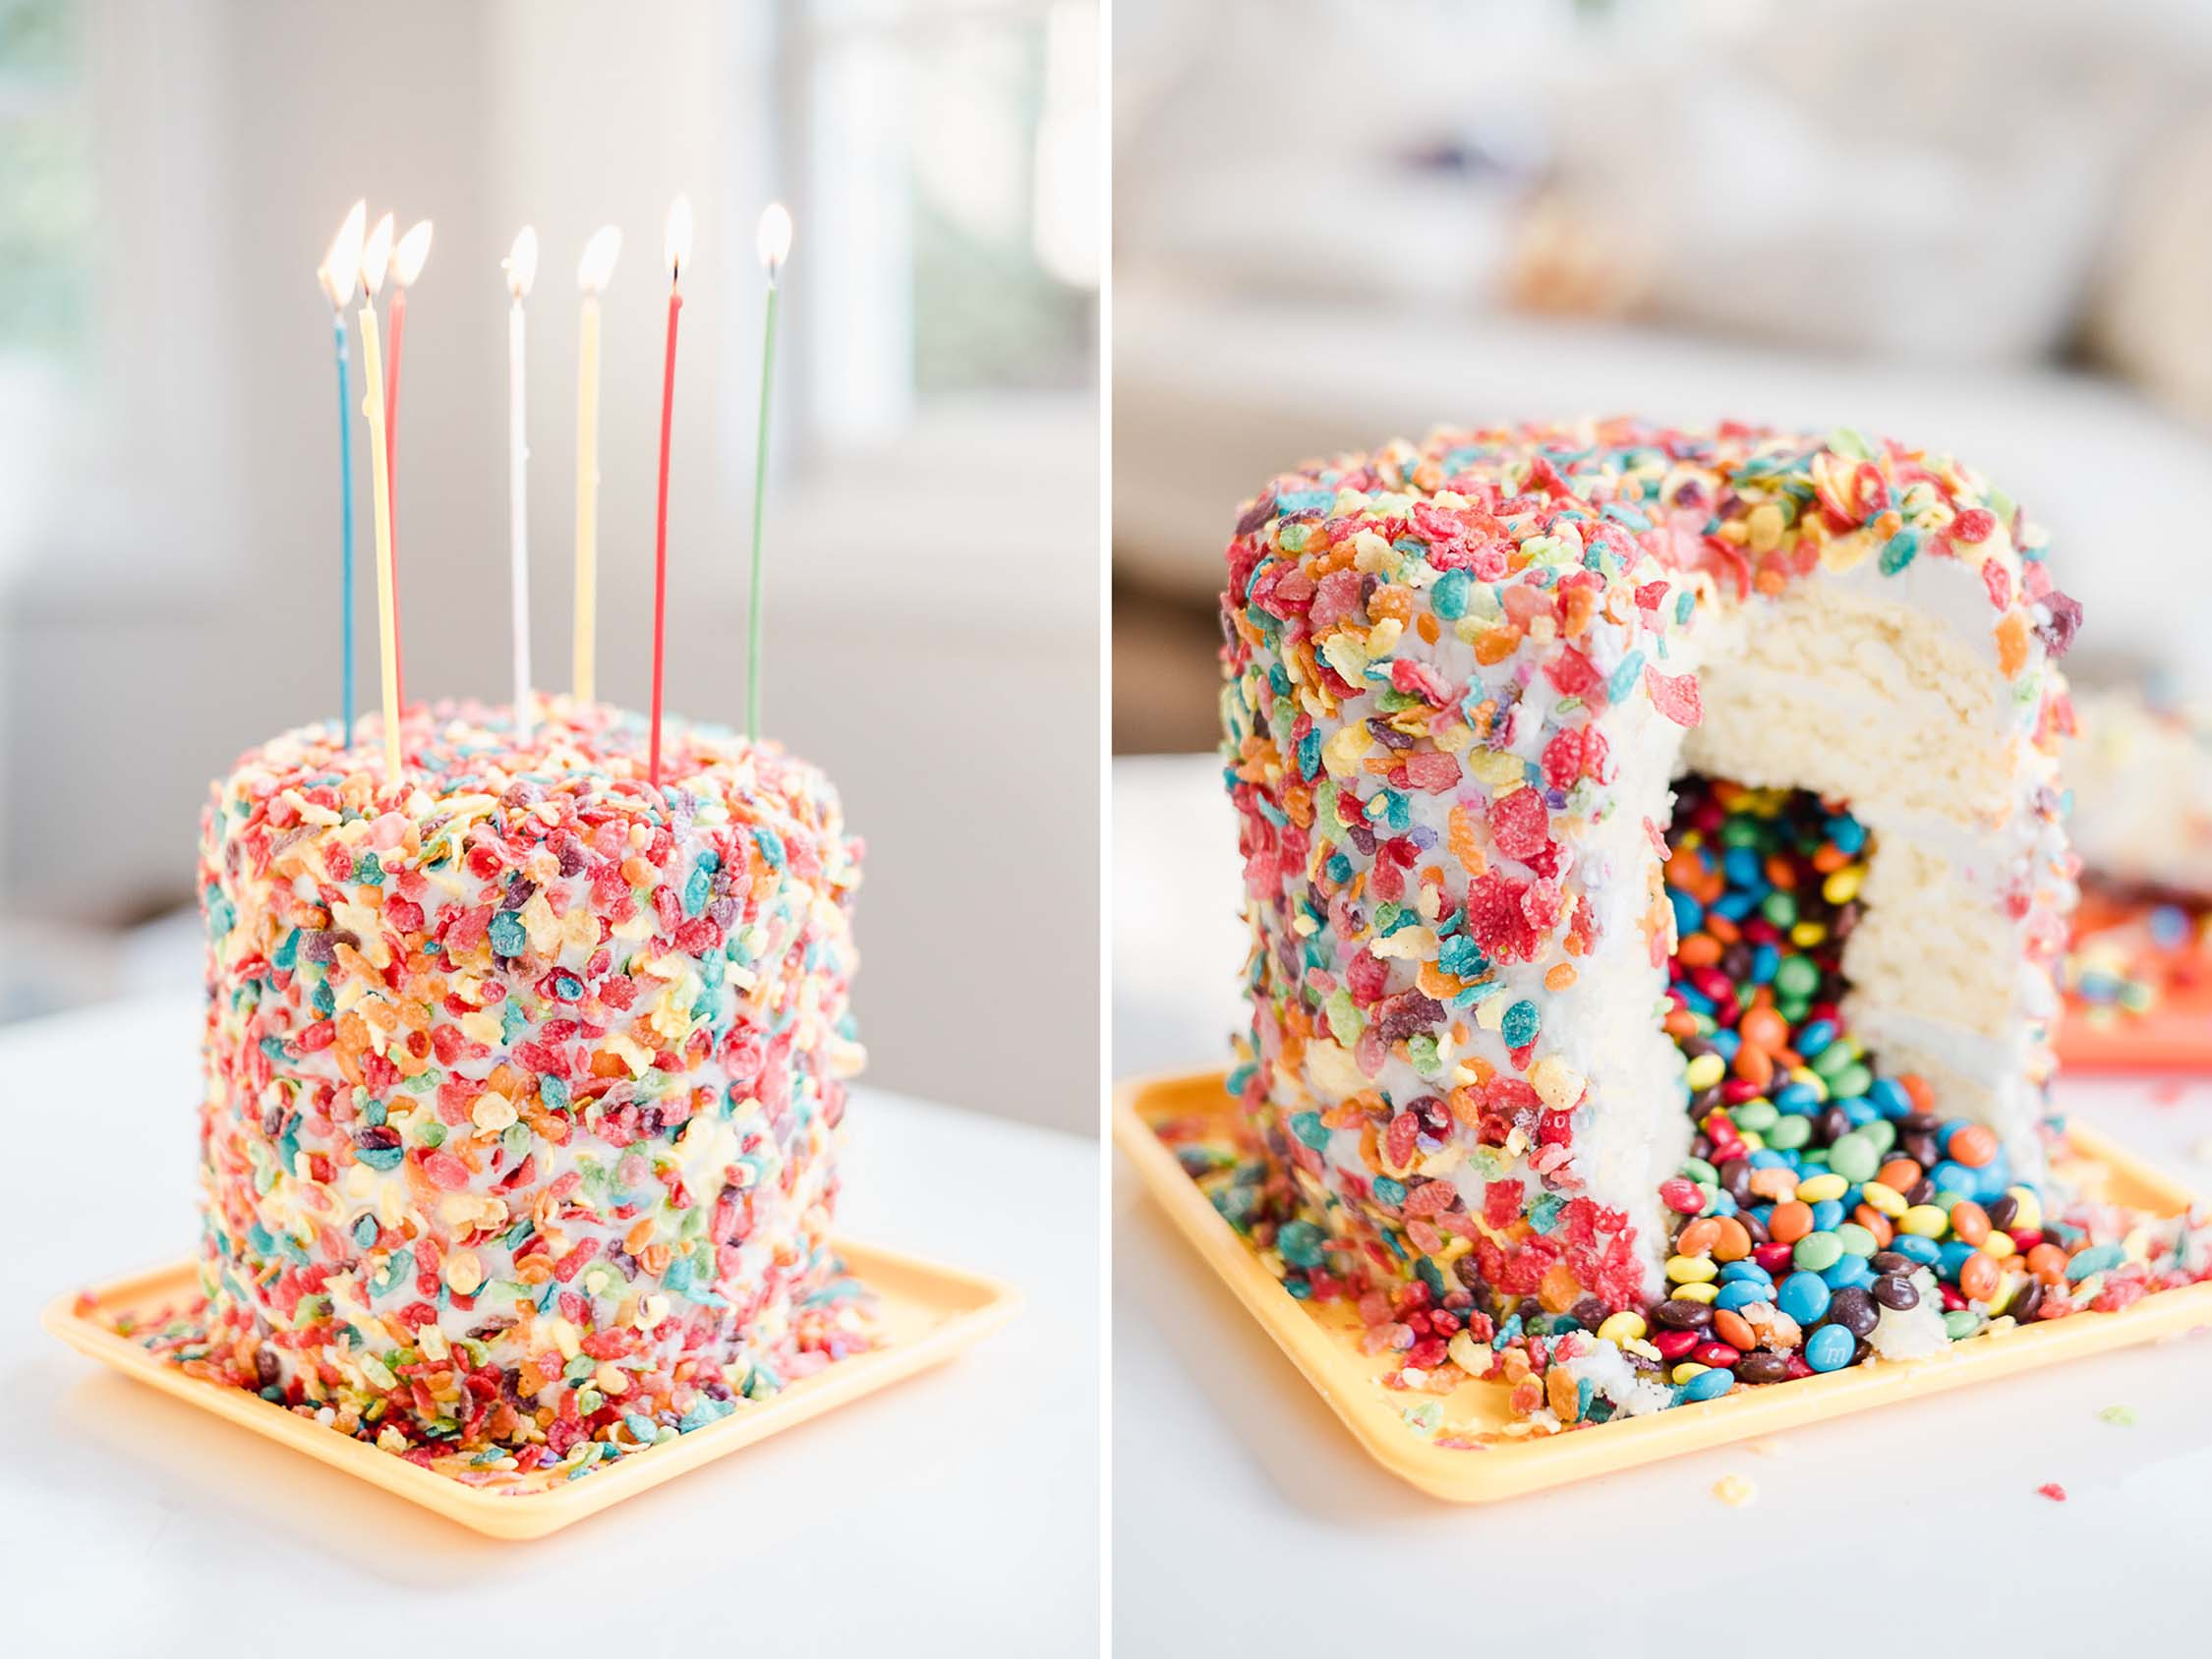 Diy Candy Surprise Inside Birthday Cake Caroline Tran